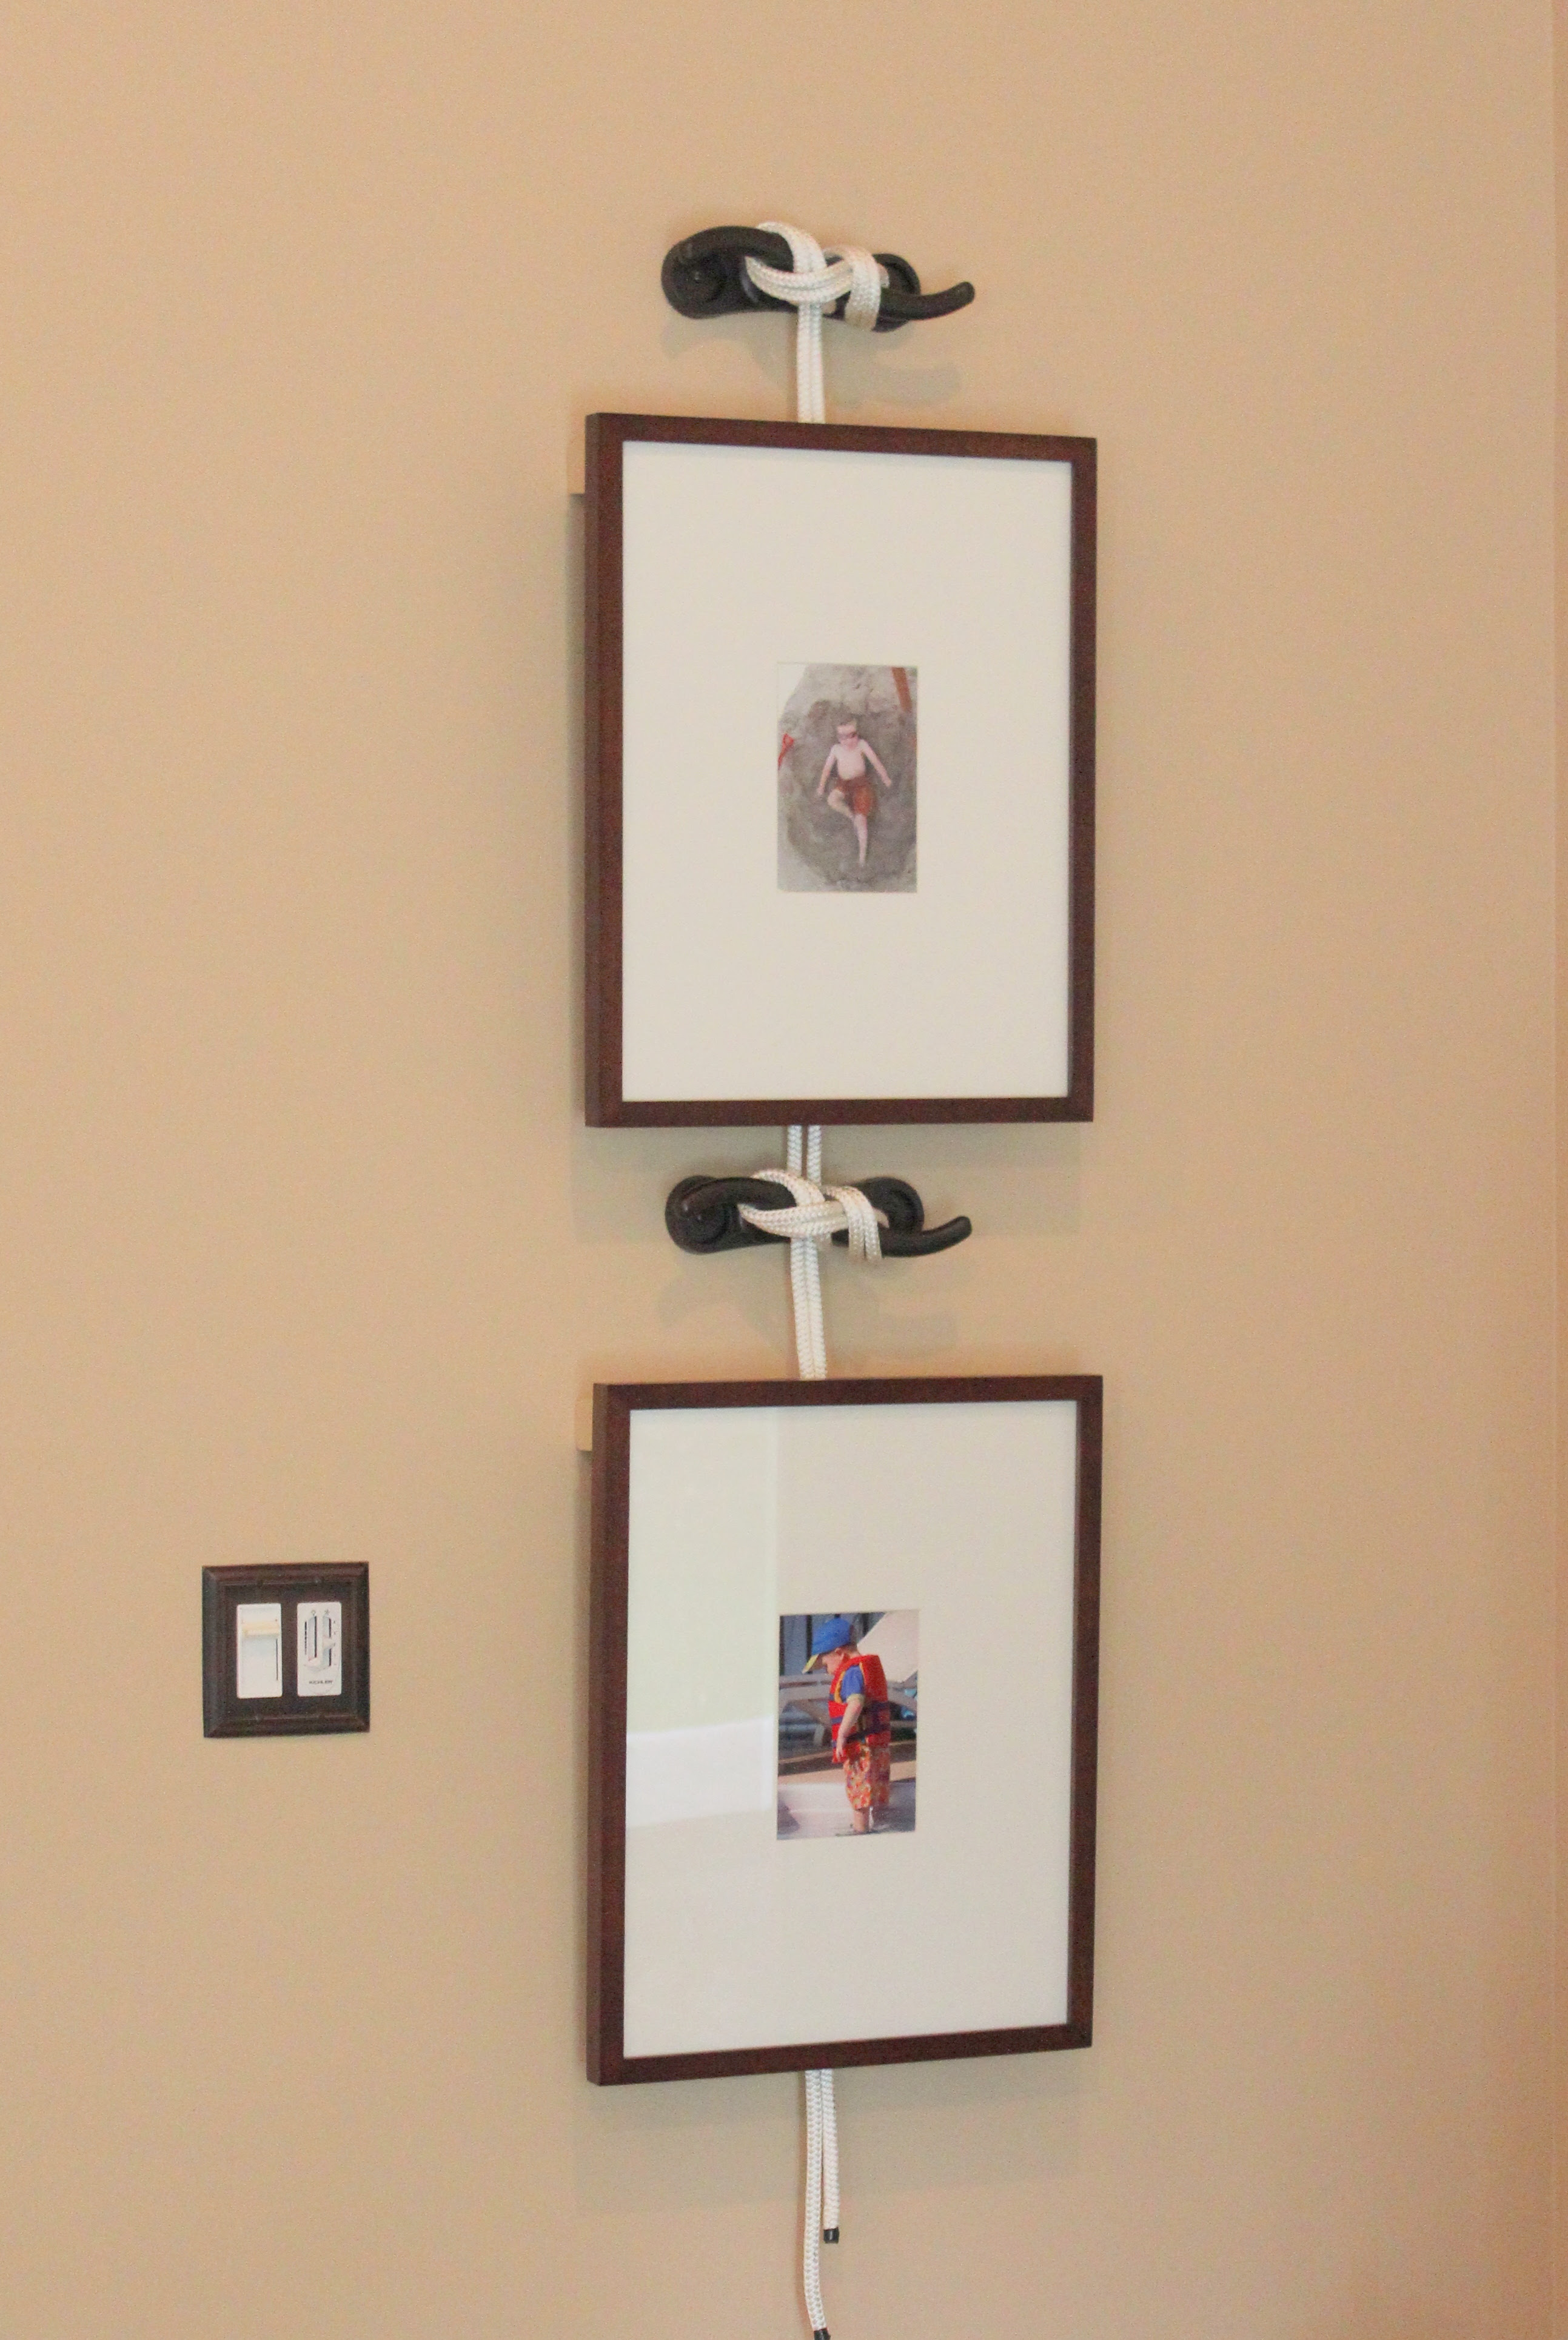 Frames Hung By Ship Cleats Sprayed With Oil Rubbed Bronze Paint To